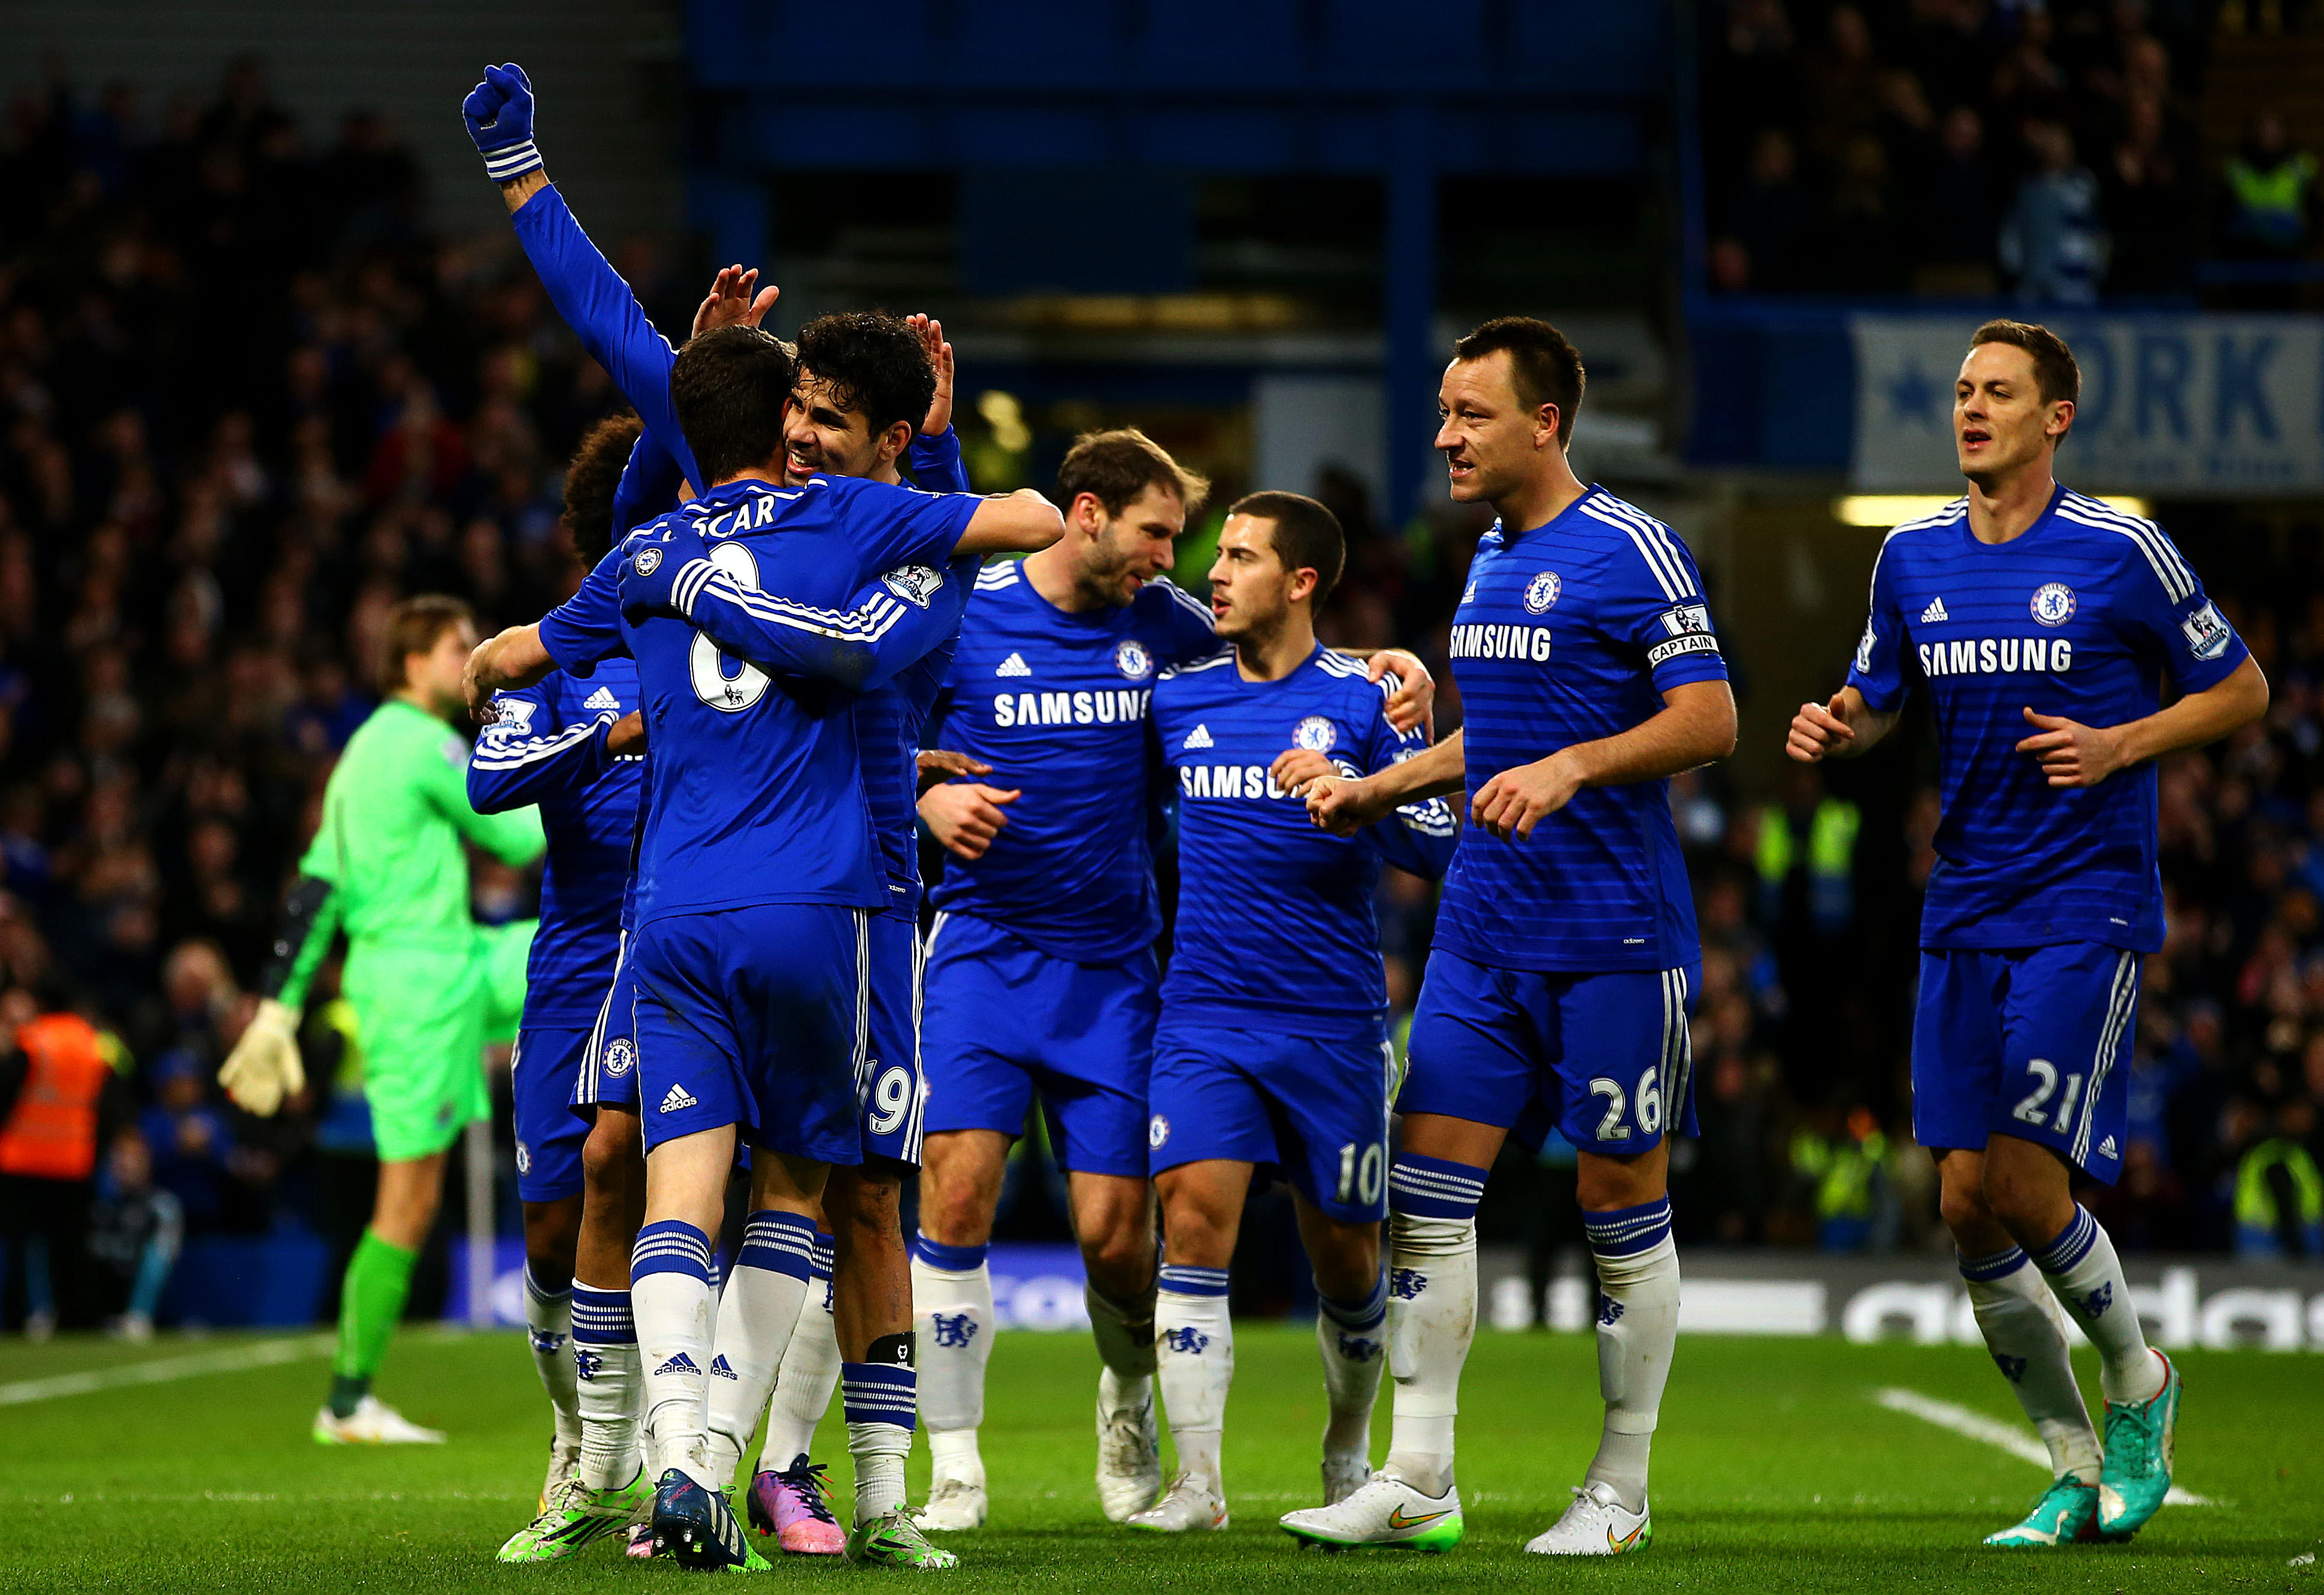 Diego Costa of Chelsea celebrates with team-mates after scoring his team's second goal during the Barclays Premier League match between Chelsea and Newcastle United at Stamford Bridge on Jan. 10, 2015 in London.